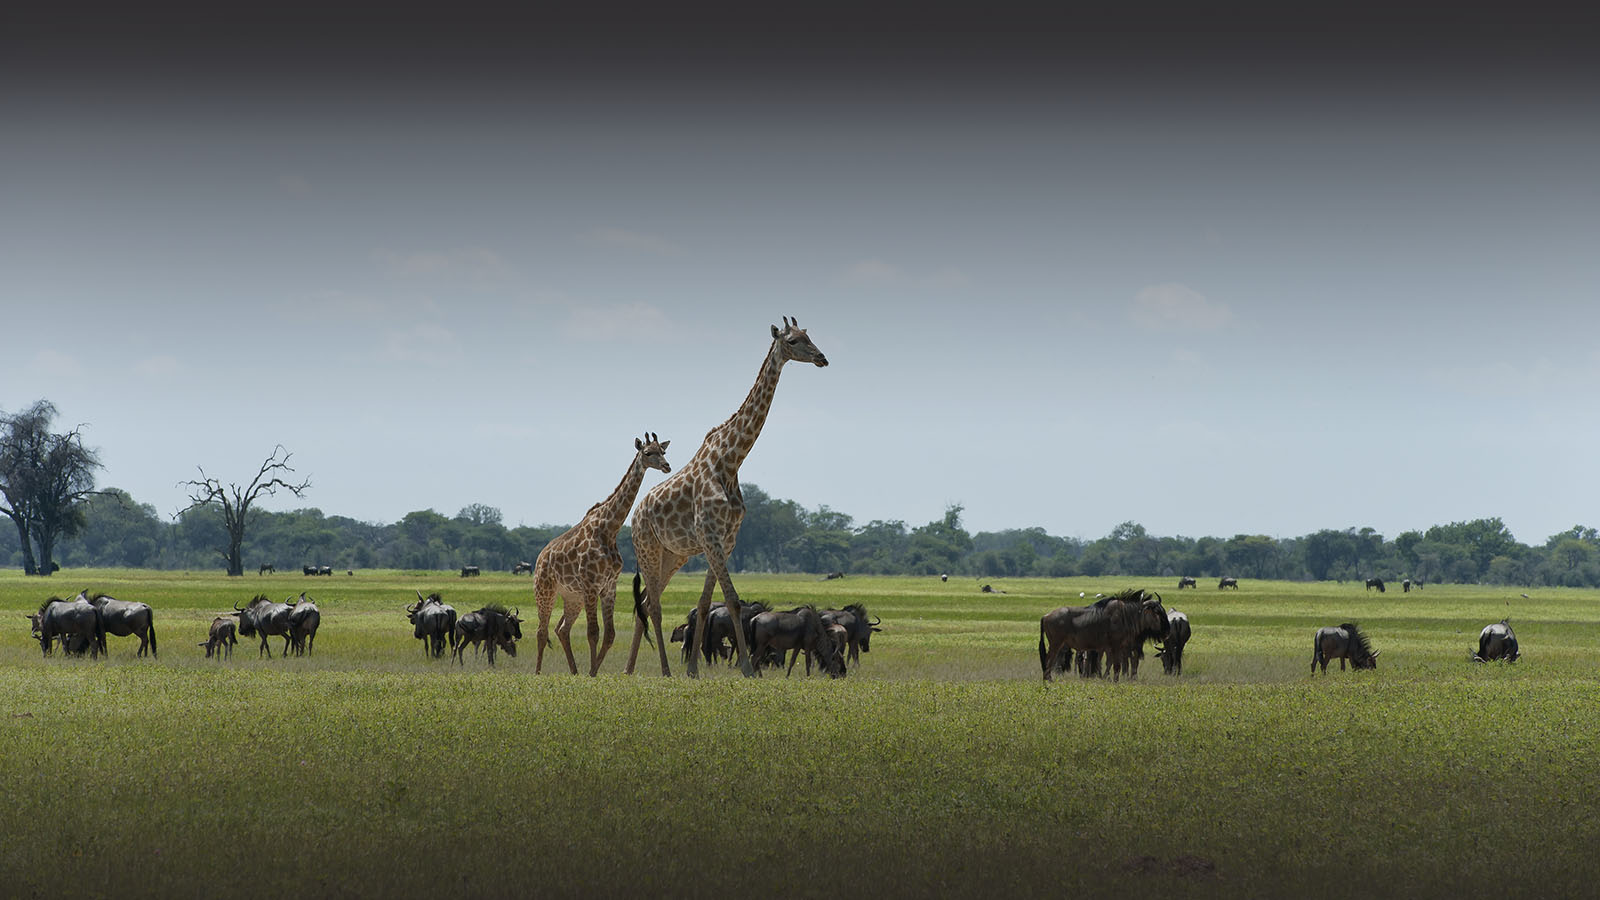 davisons camp hwange-national-park-zimbabwe-accommodation-lodges-wilderness-safaris-wildlife-giraffe